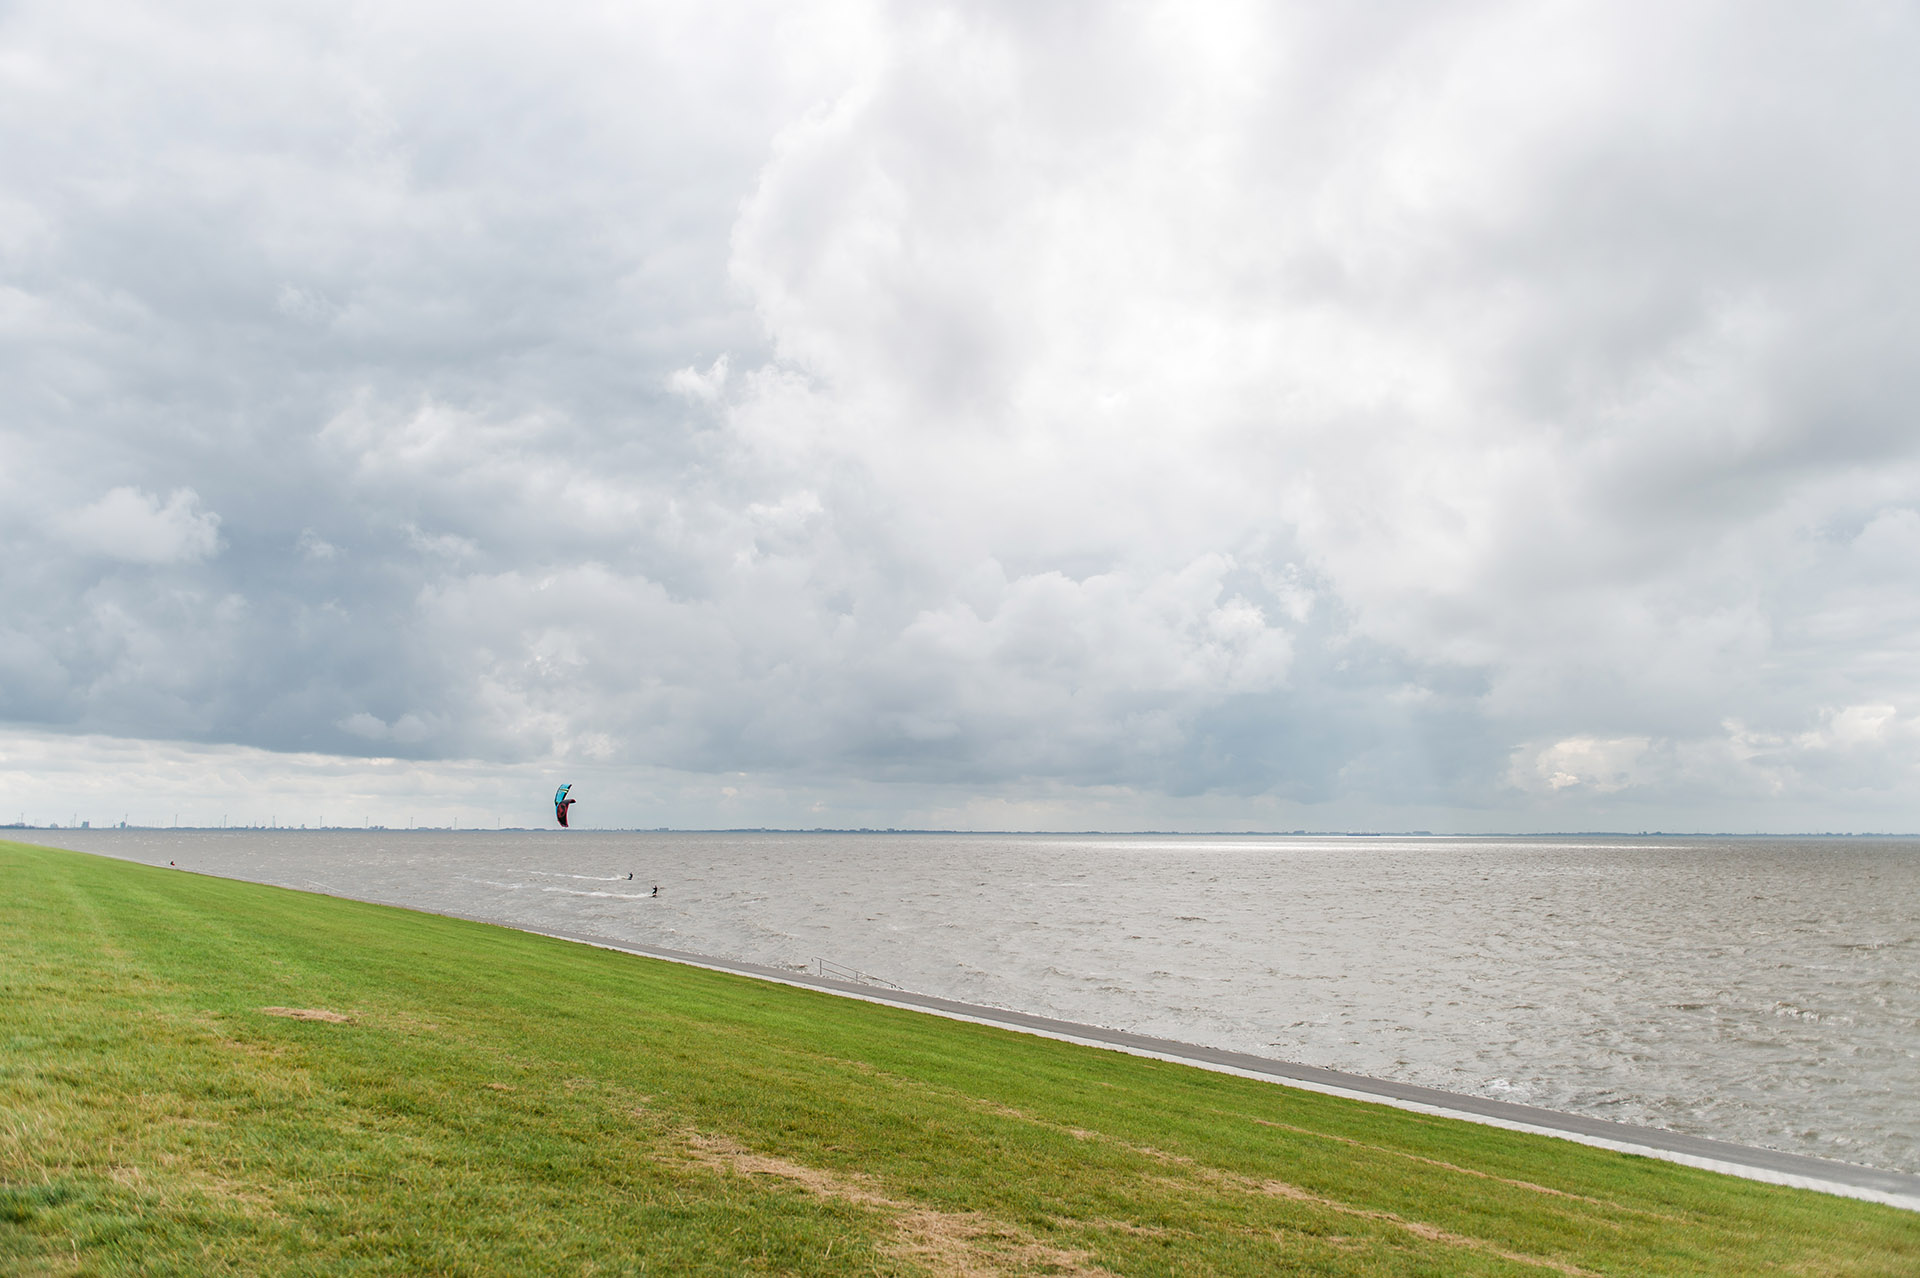 Camping am Deich, Nordsee, Meer